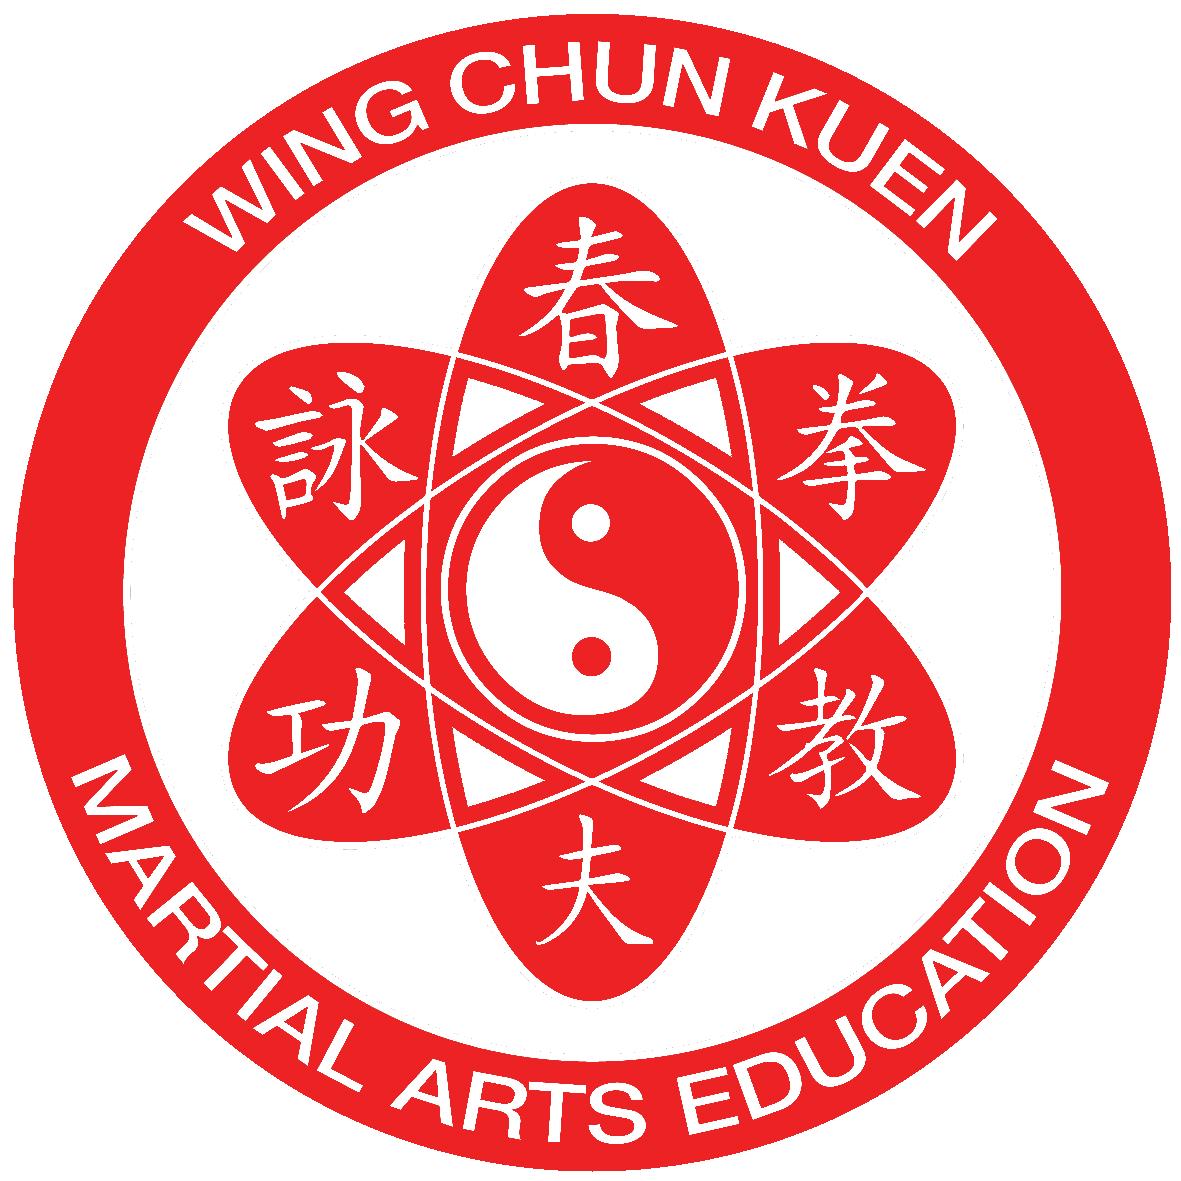 Kids Wing Chun Kuen Uniform Sash Not Included Wing Chun Kuen